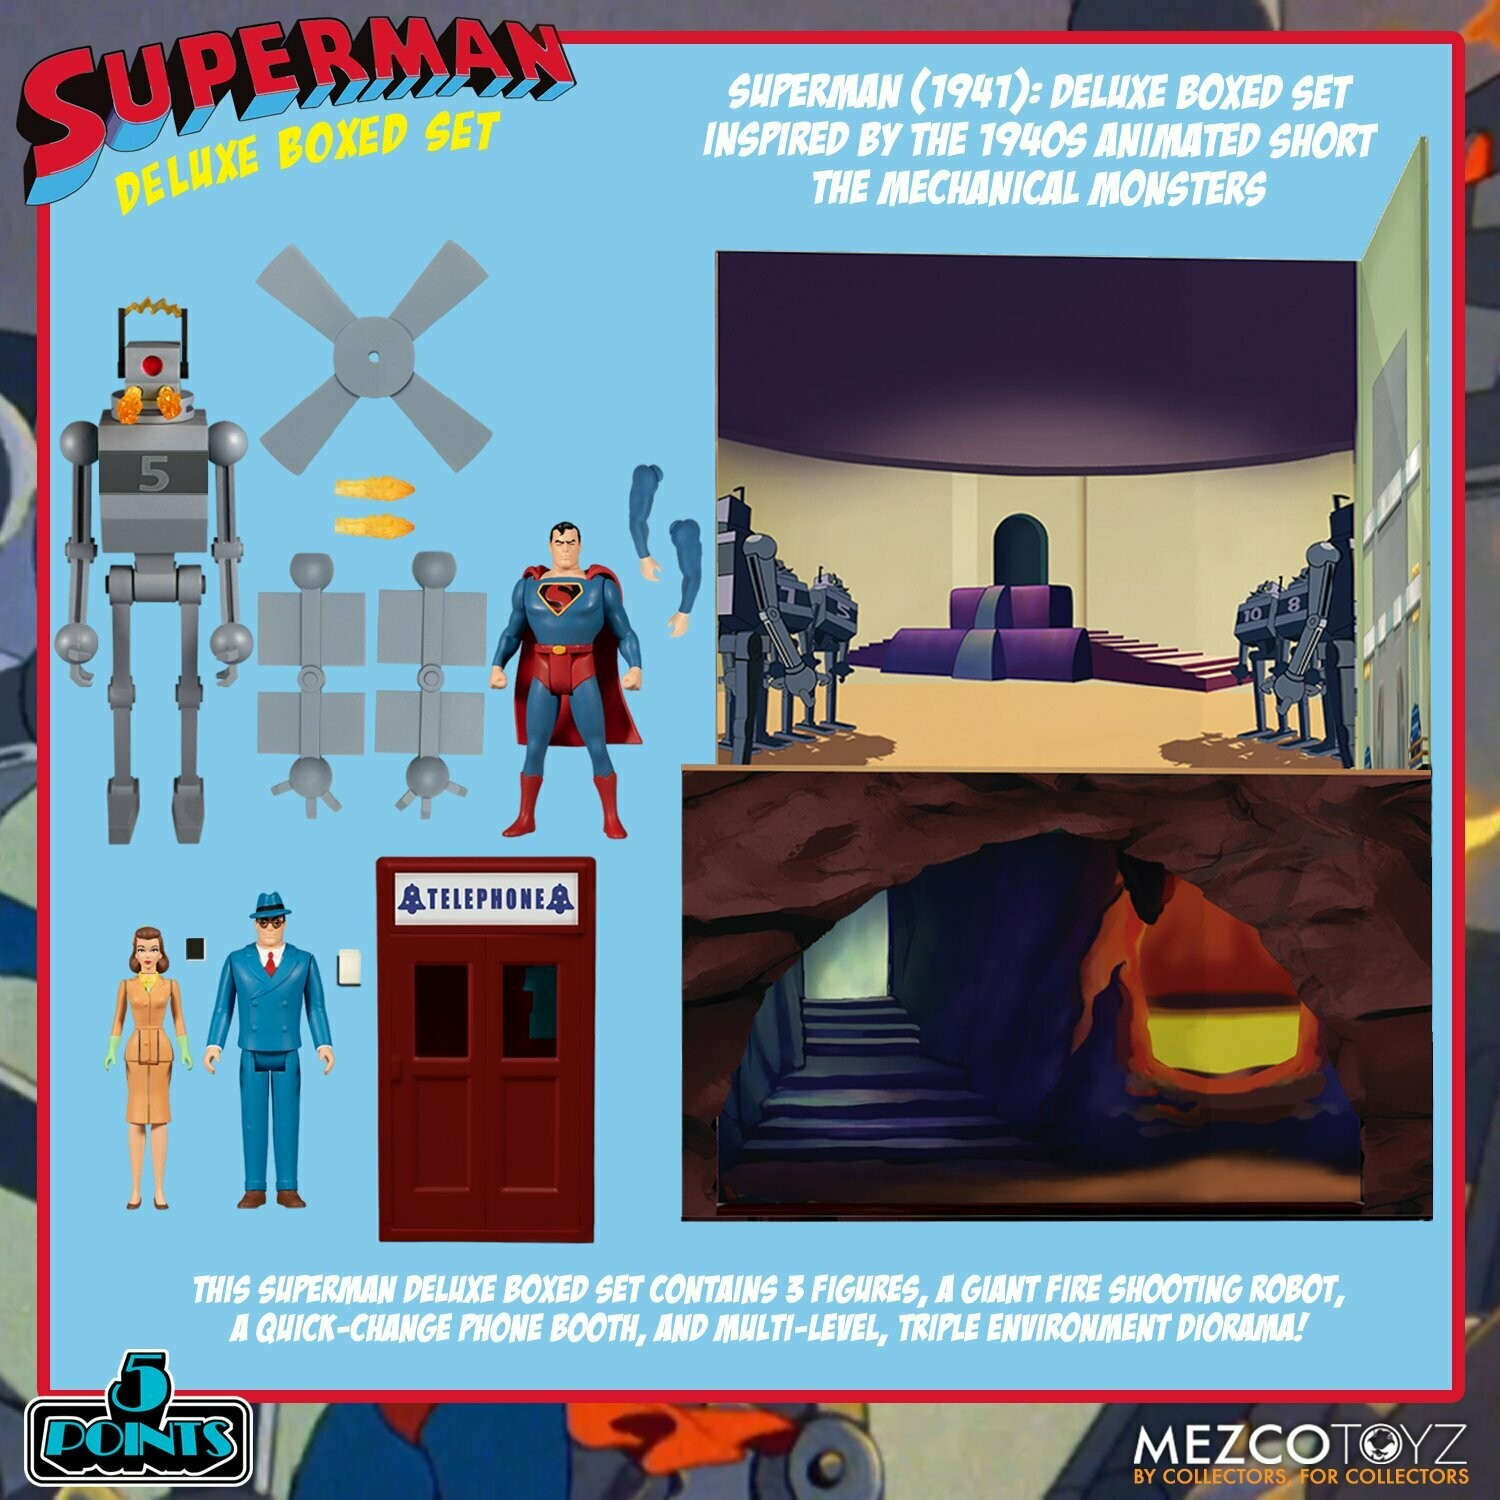 PRE-ORDER Mezco 5 Points Superman - The Mechanical Monsters (1941) Deluxe Boxed Set